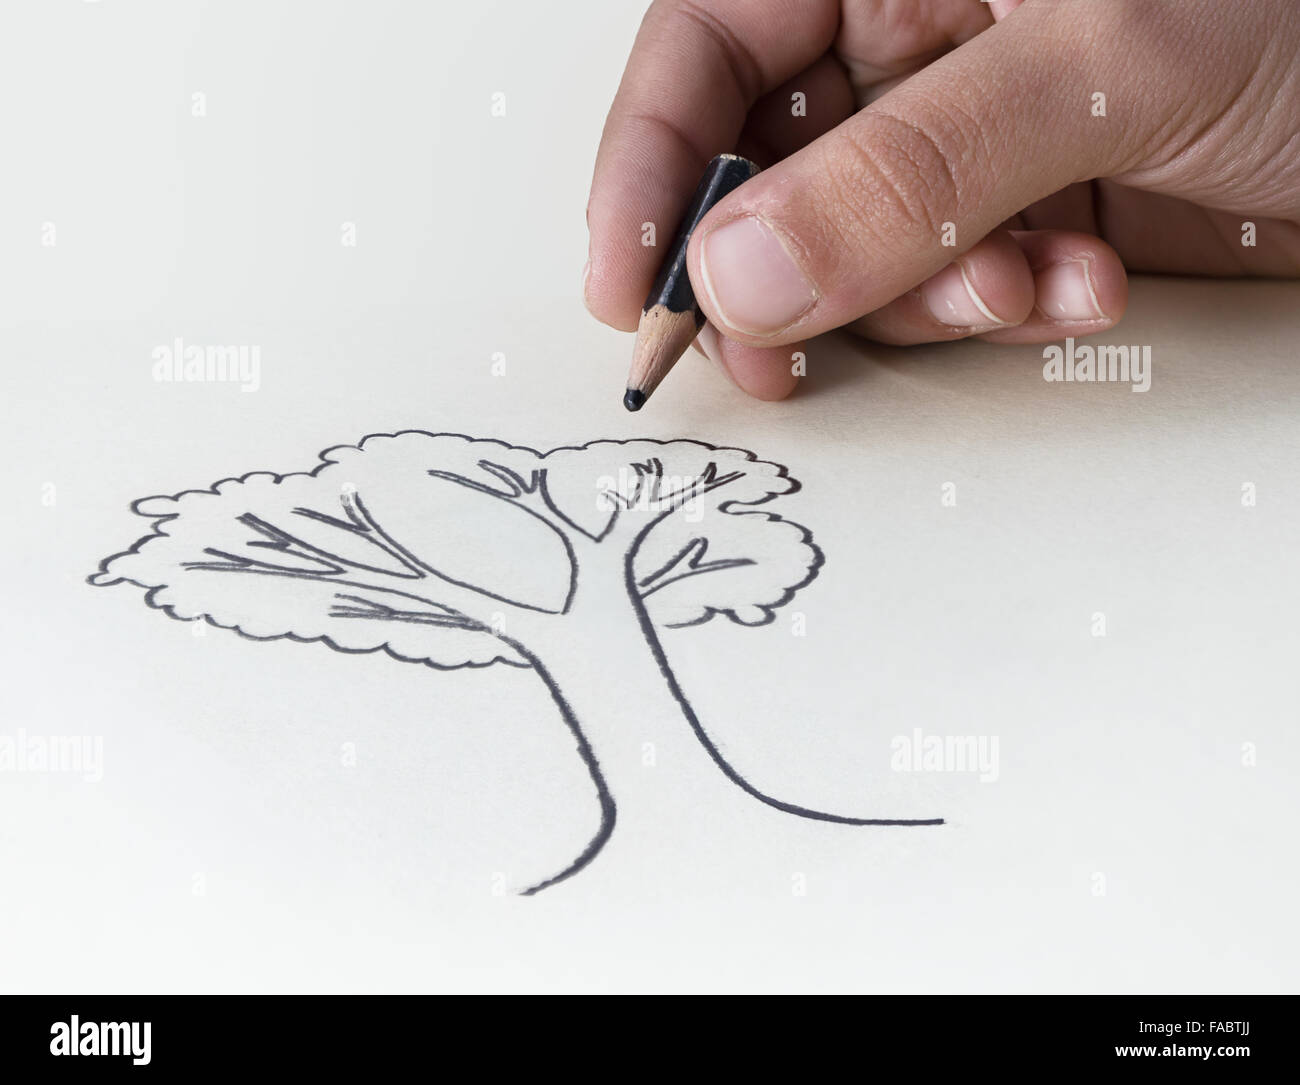 A child drawing a tree with a very short pencil stub expressing he concept of the